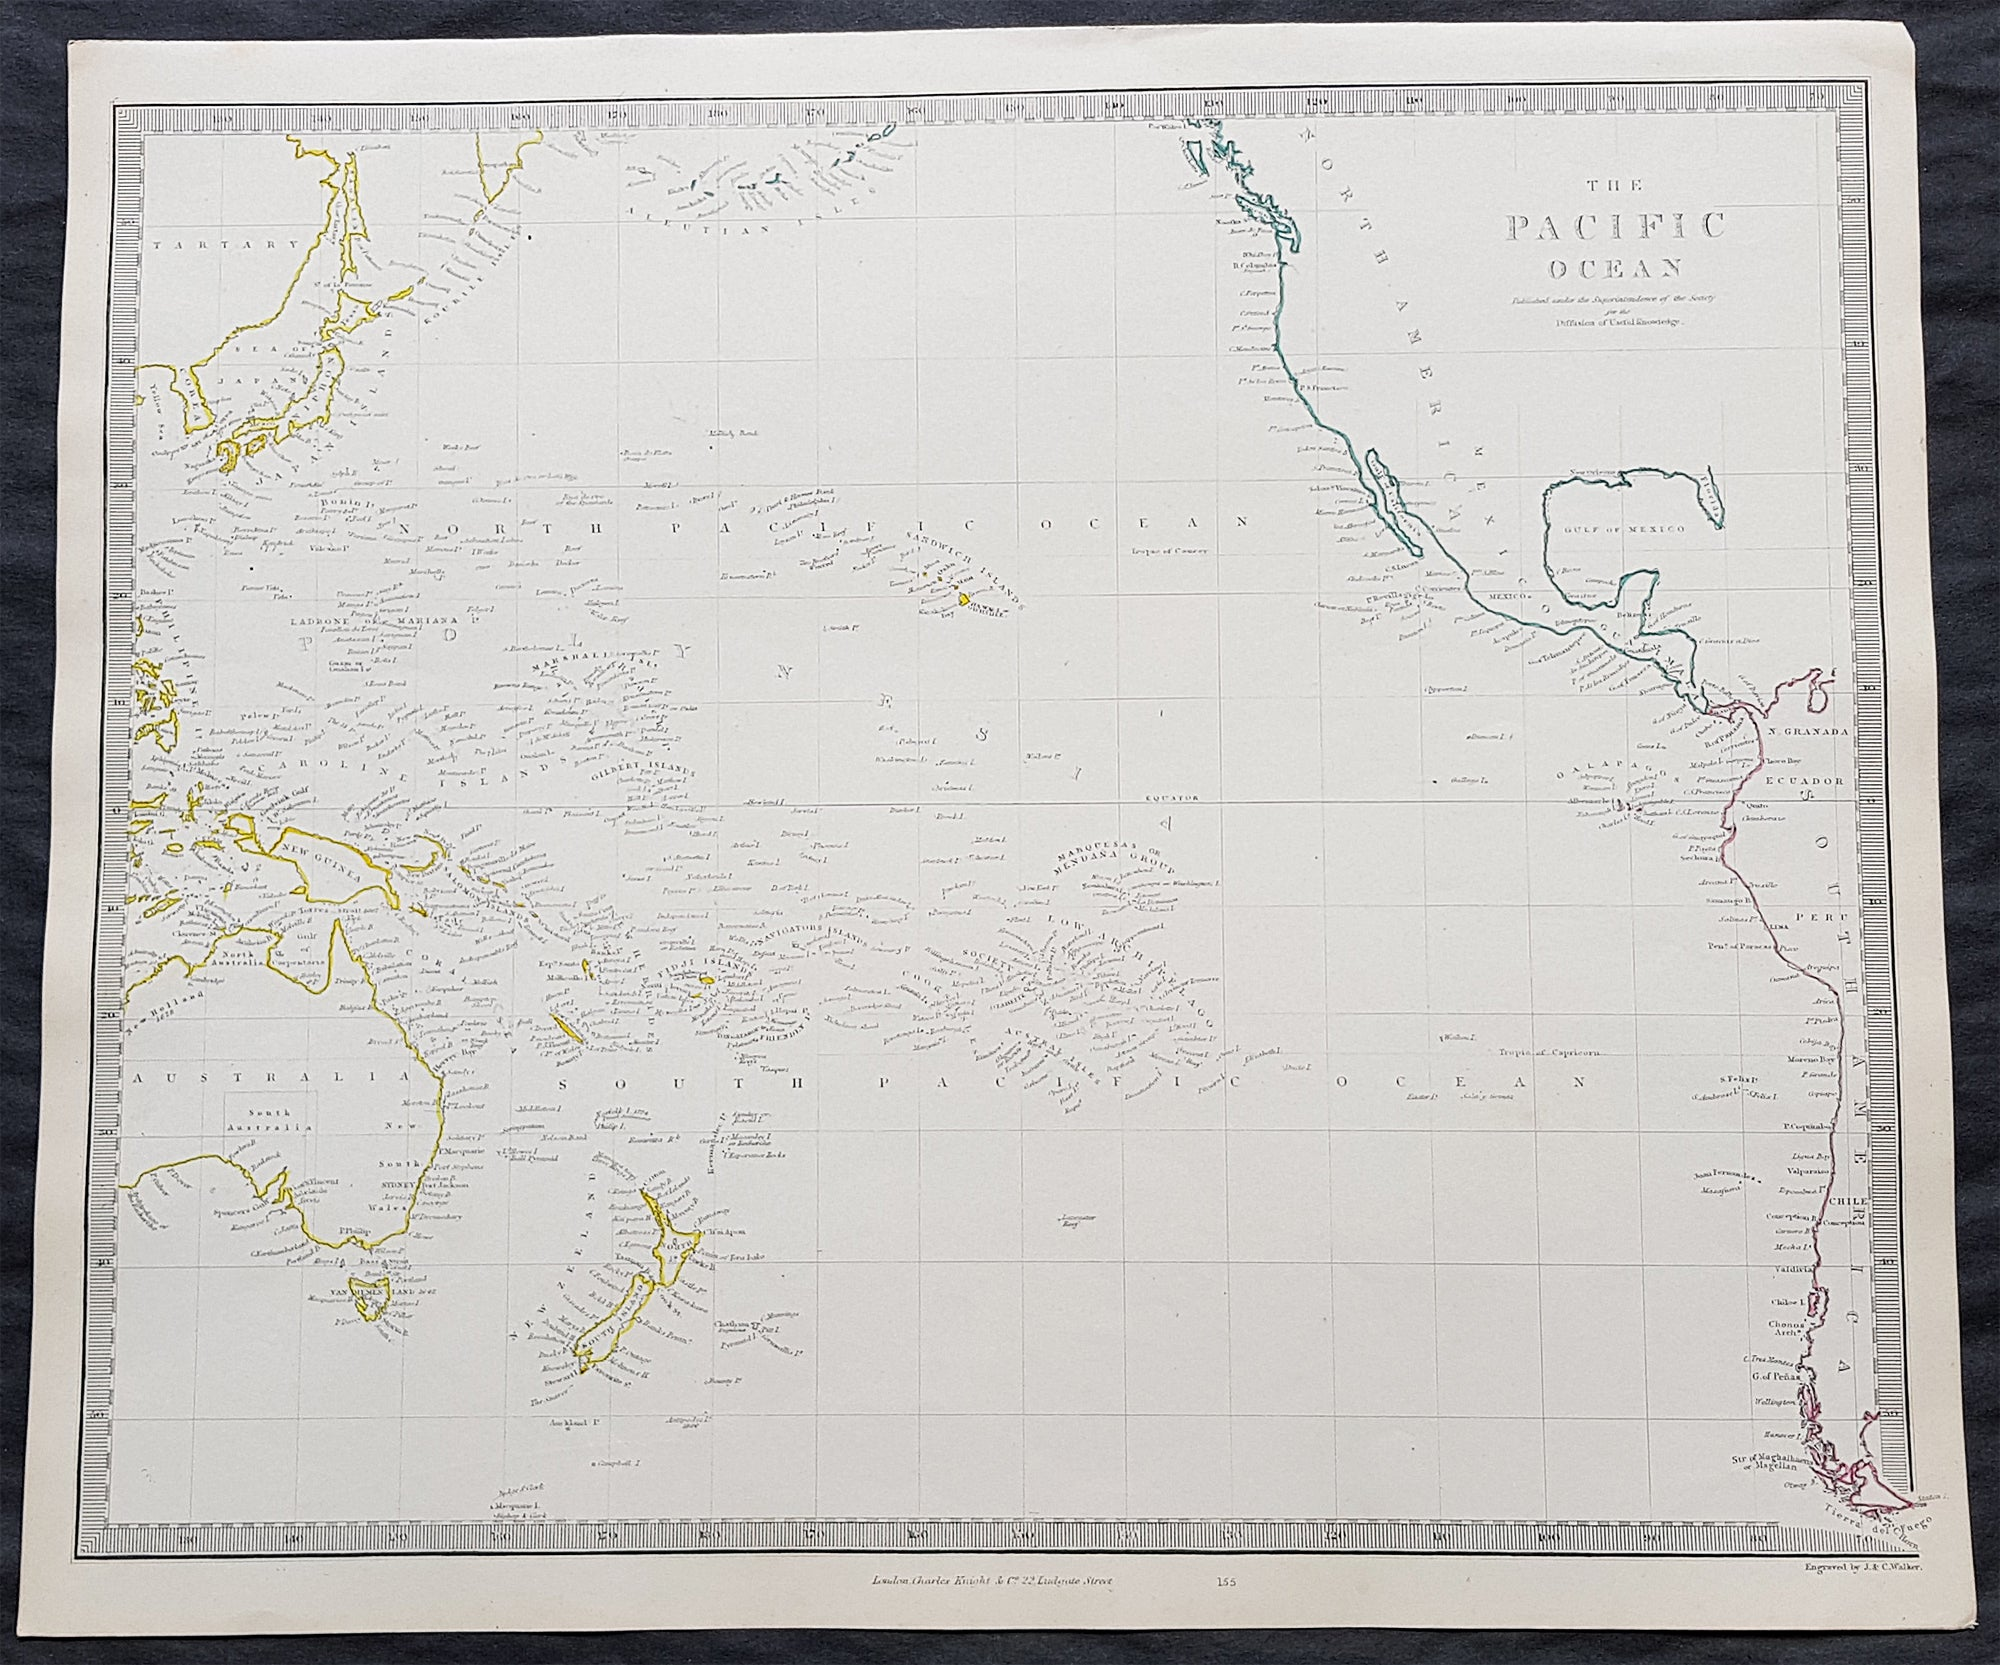 Map Of America Over Australia.1840 Sduk Antique Map Of The Pacific Ocean North America Japan Australia New Zealand